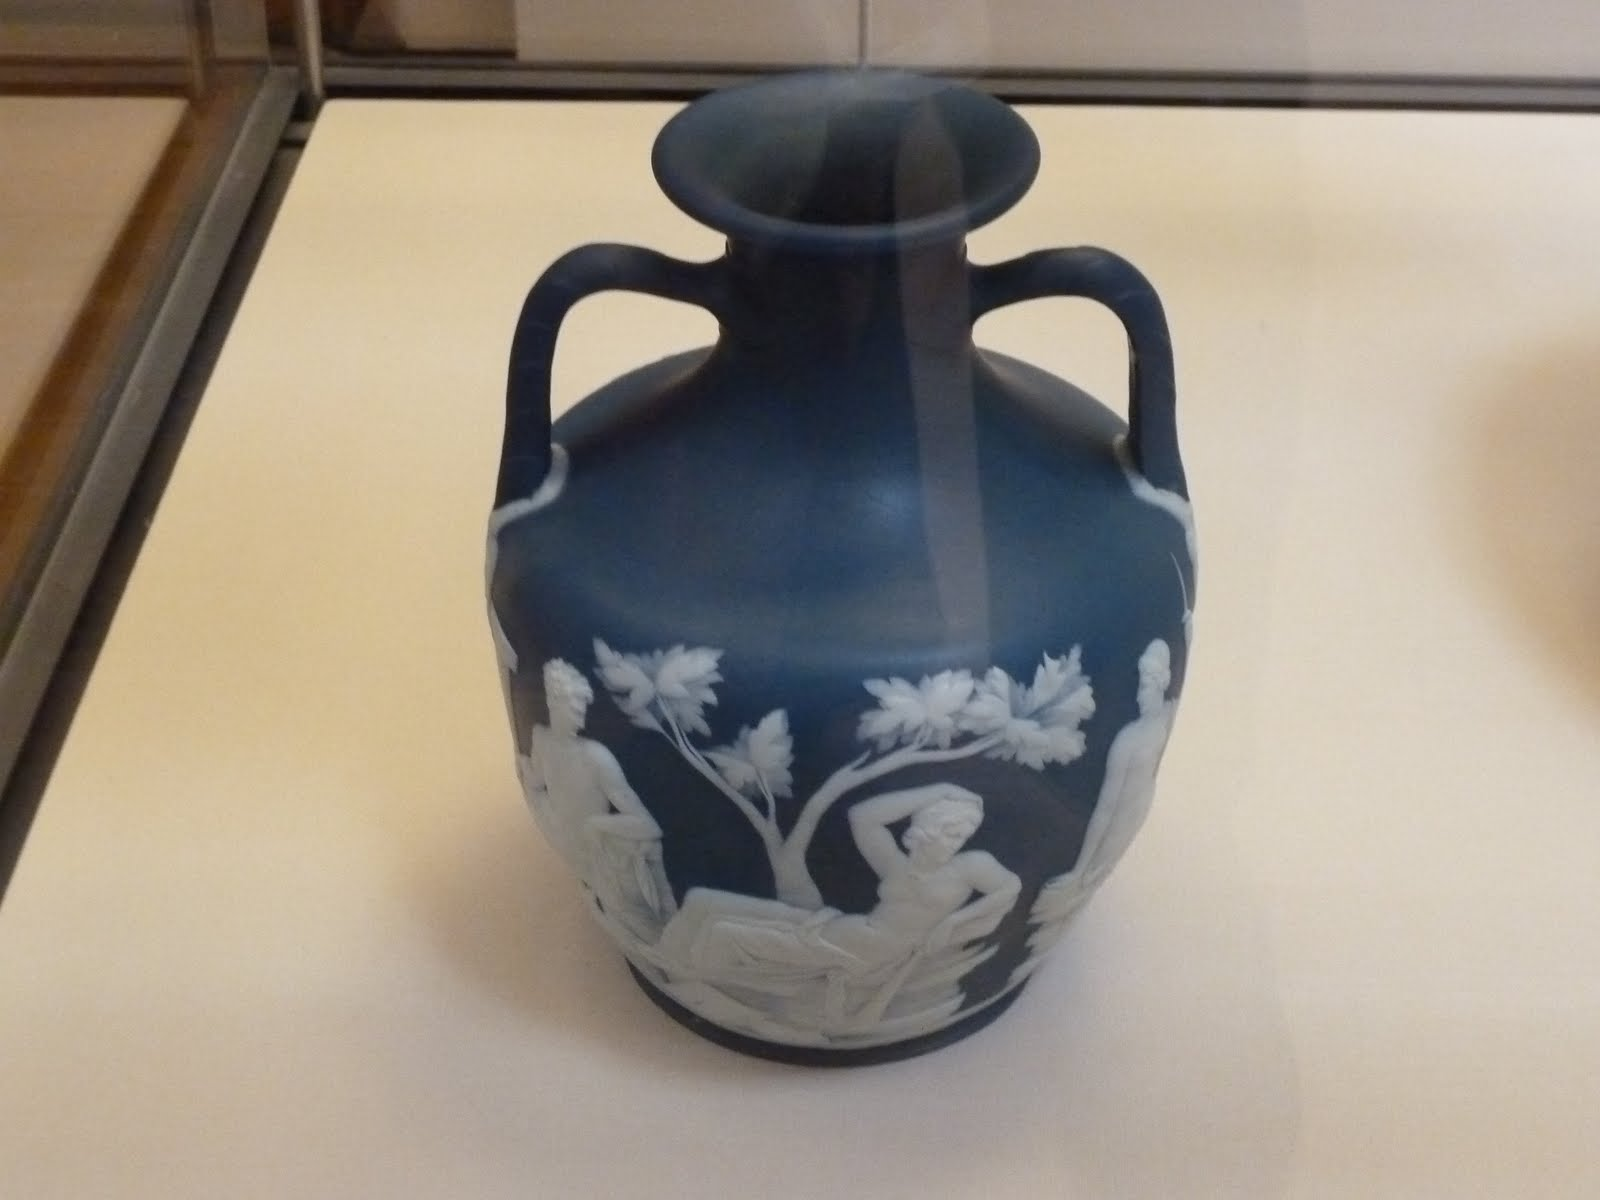 Travels with victoria the british museum part one number one copy of the portland vase jasperware thrown applied reliefs england staffordshire wedgwood c1791 between 1786 95 josiah wedgwood painstakingly reviewsmspy